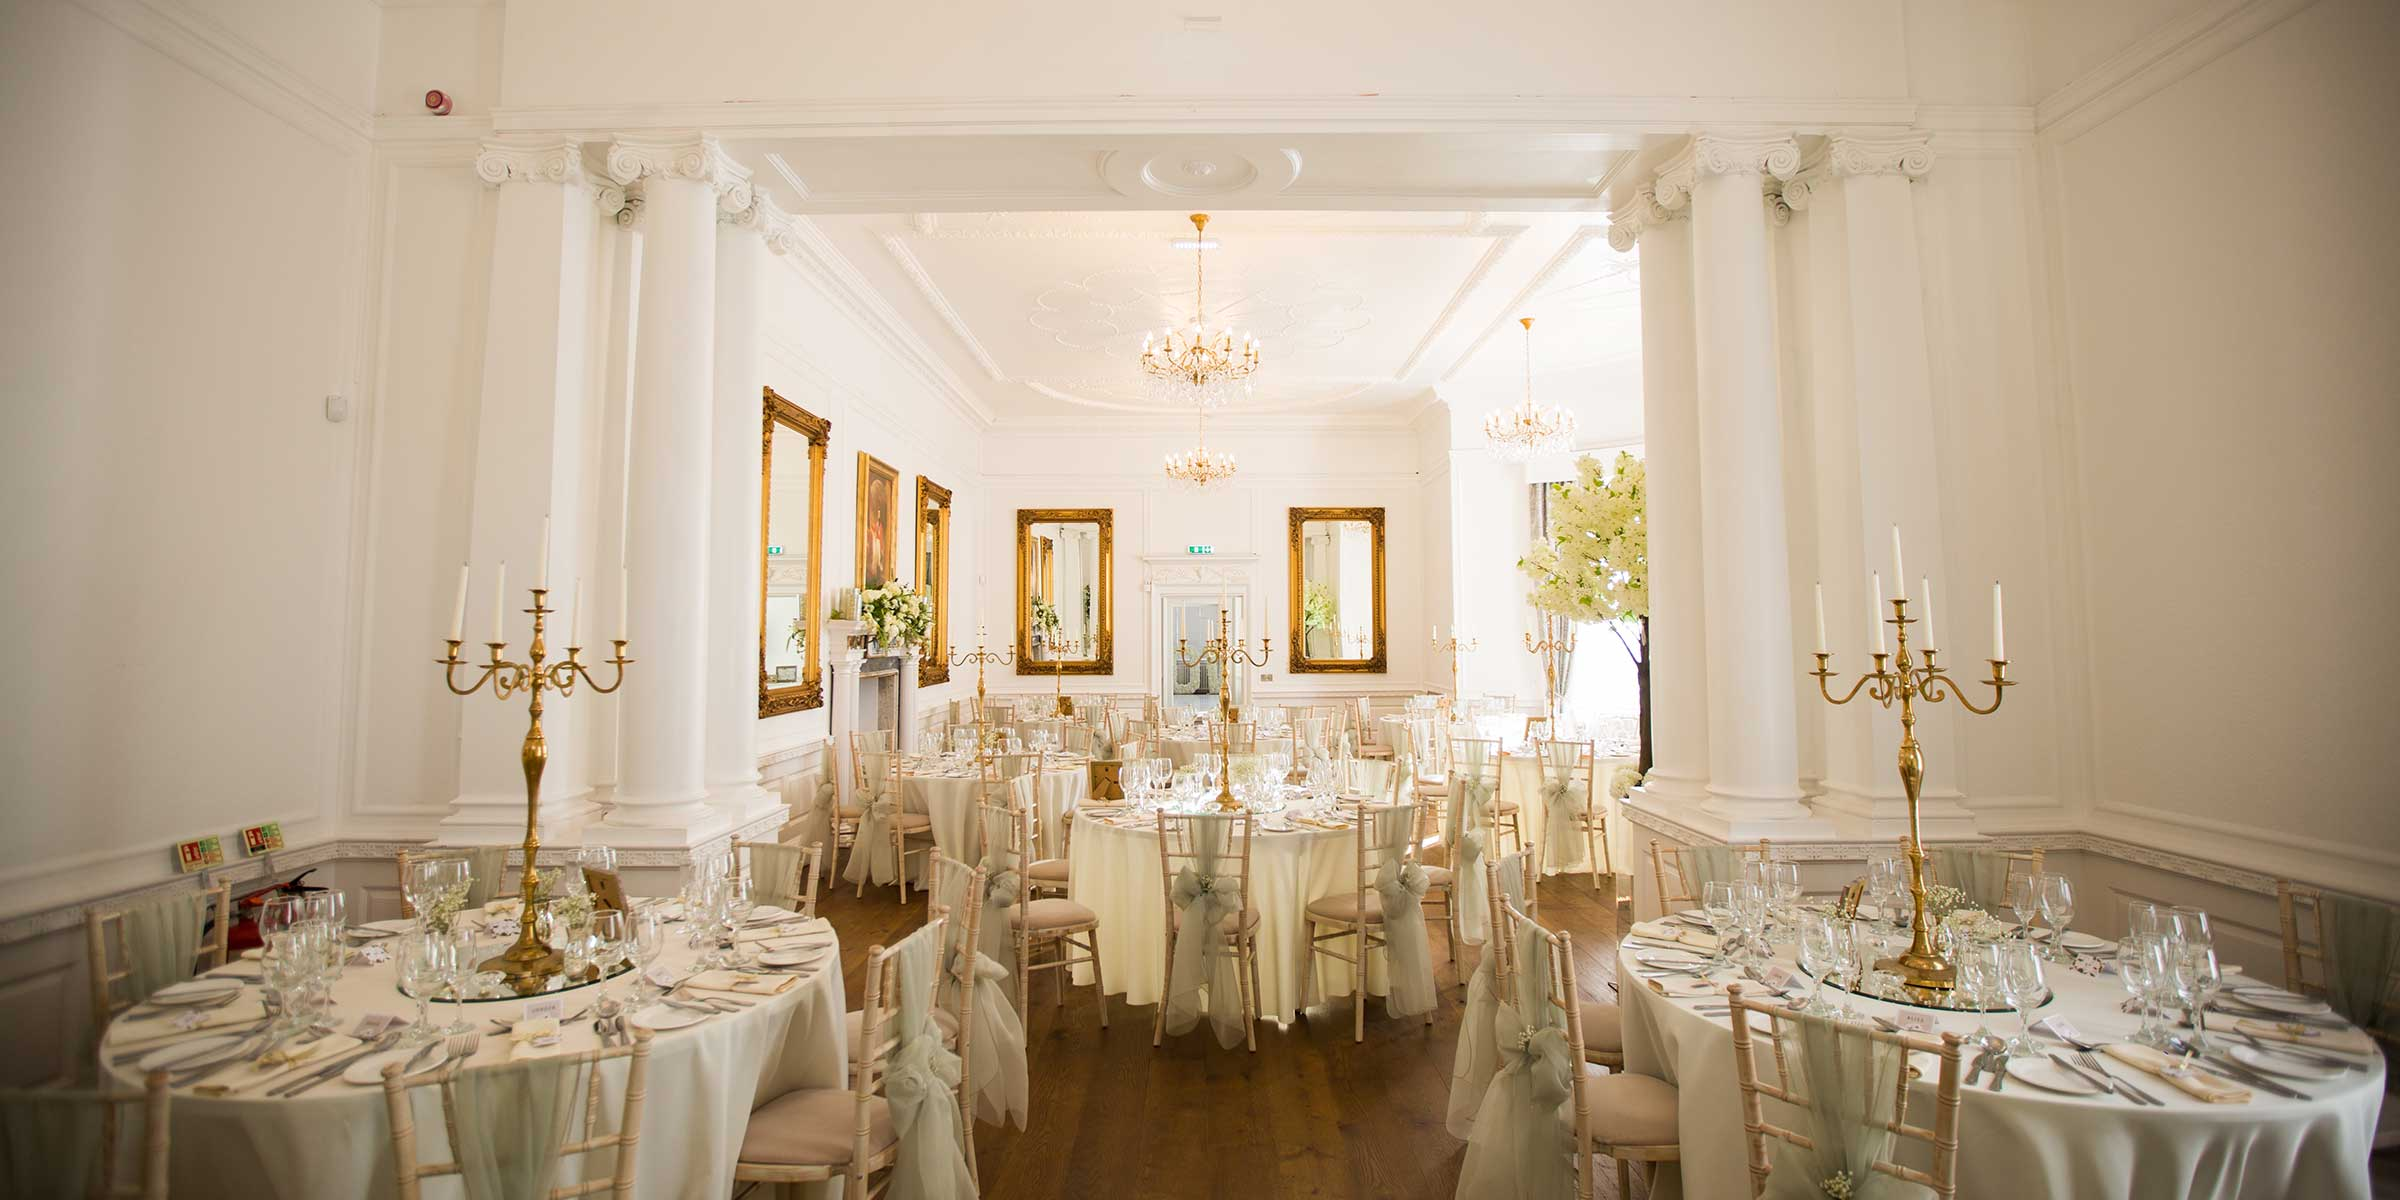 Bawtry Hall Wedding Venue Yorkshire - Seating